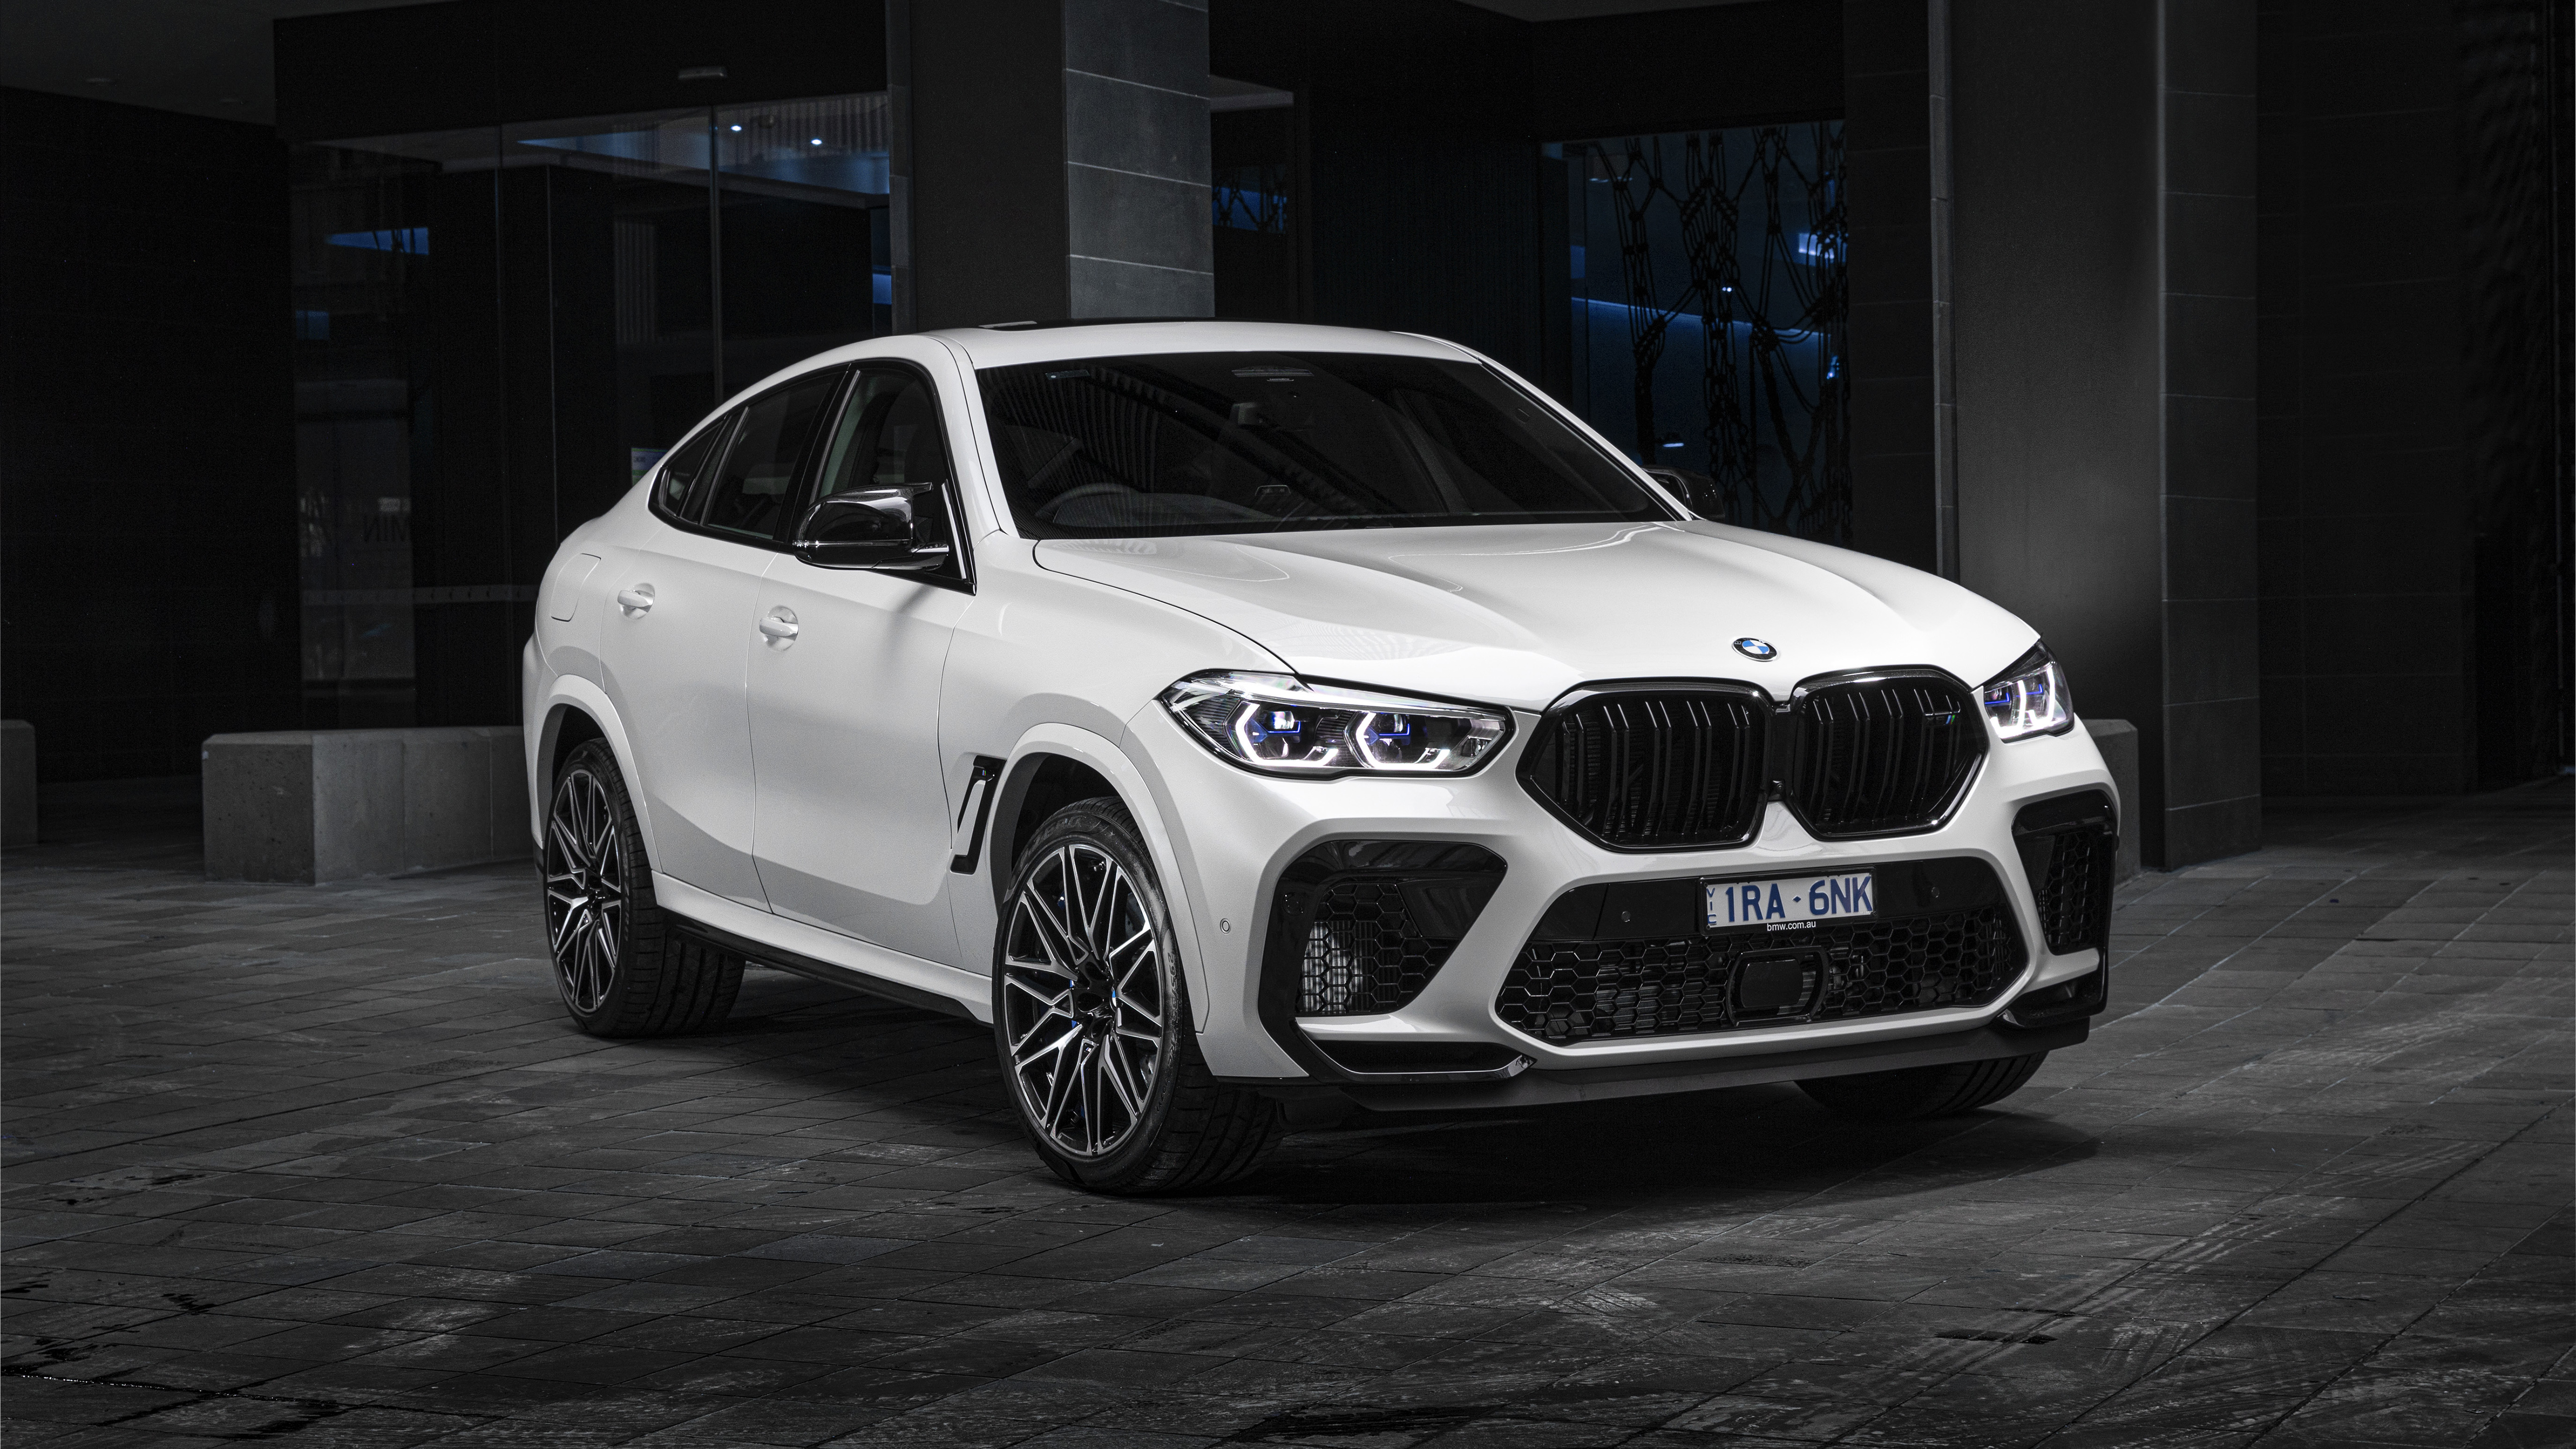 Bmw X6 M Competition 2020 5k Wallpaper Hd Car Wallpapers Id 14858